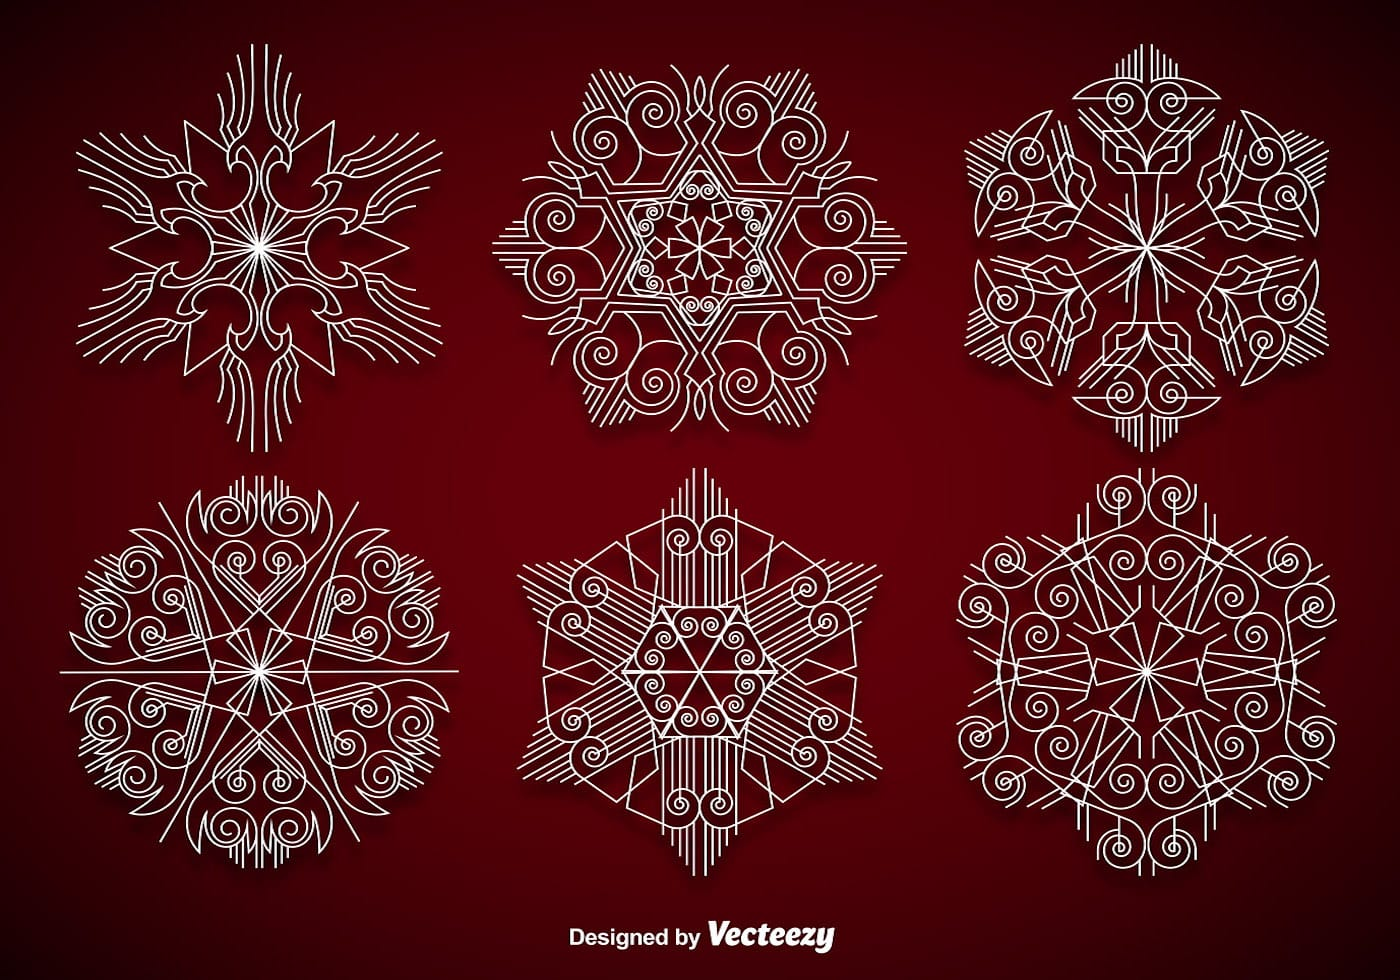 Elegant Christmas Background With Snowflakes Stock Vector: Download Free Vector Art, Stock